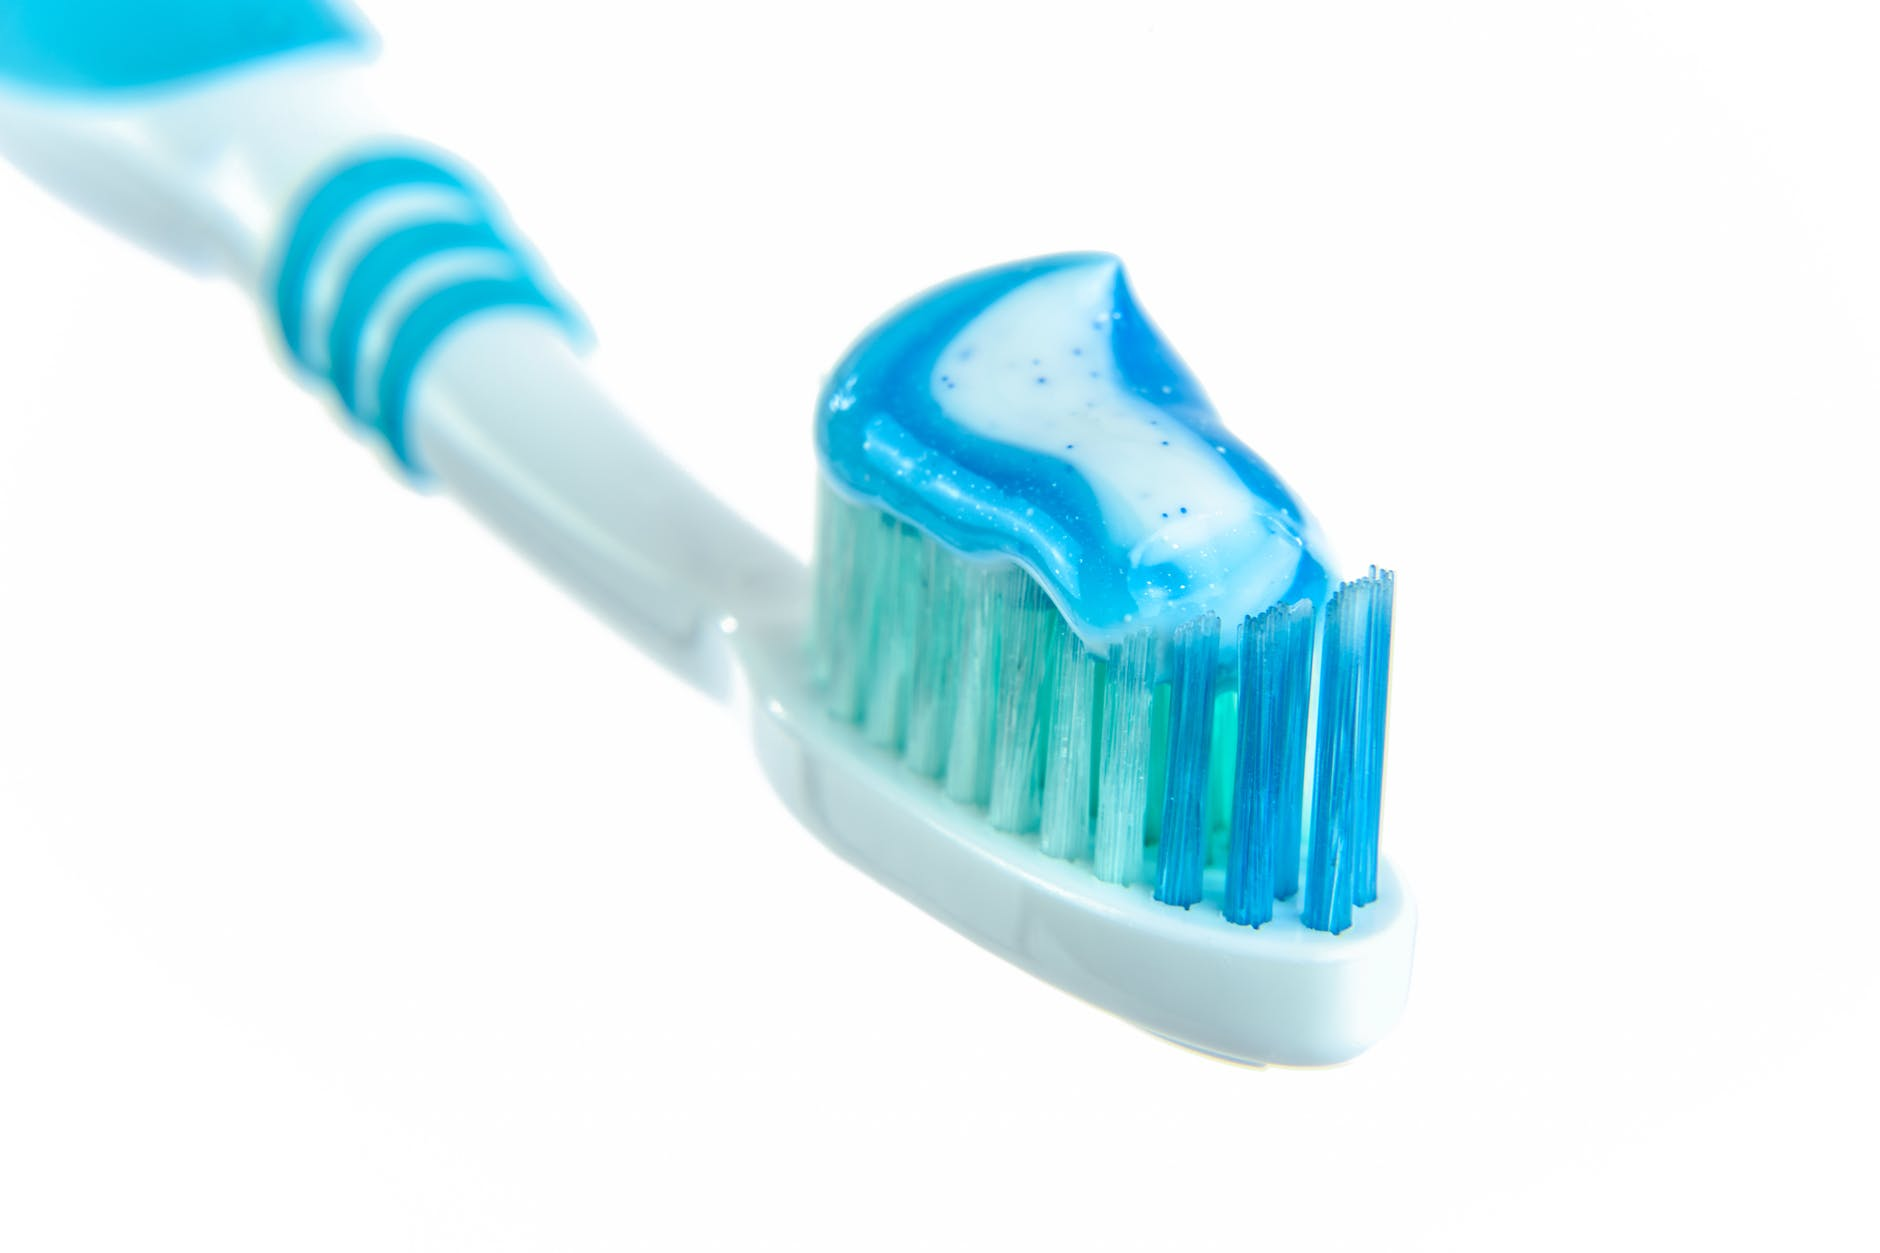 Dermatitis- Your Toothpaste May Cause Dermatitis Around Your Mouth